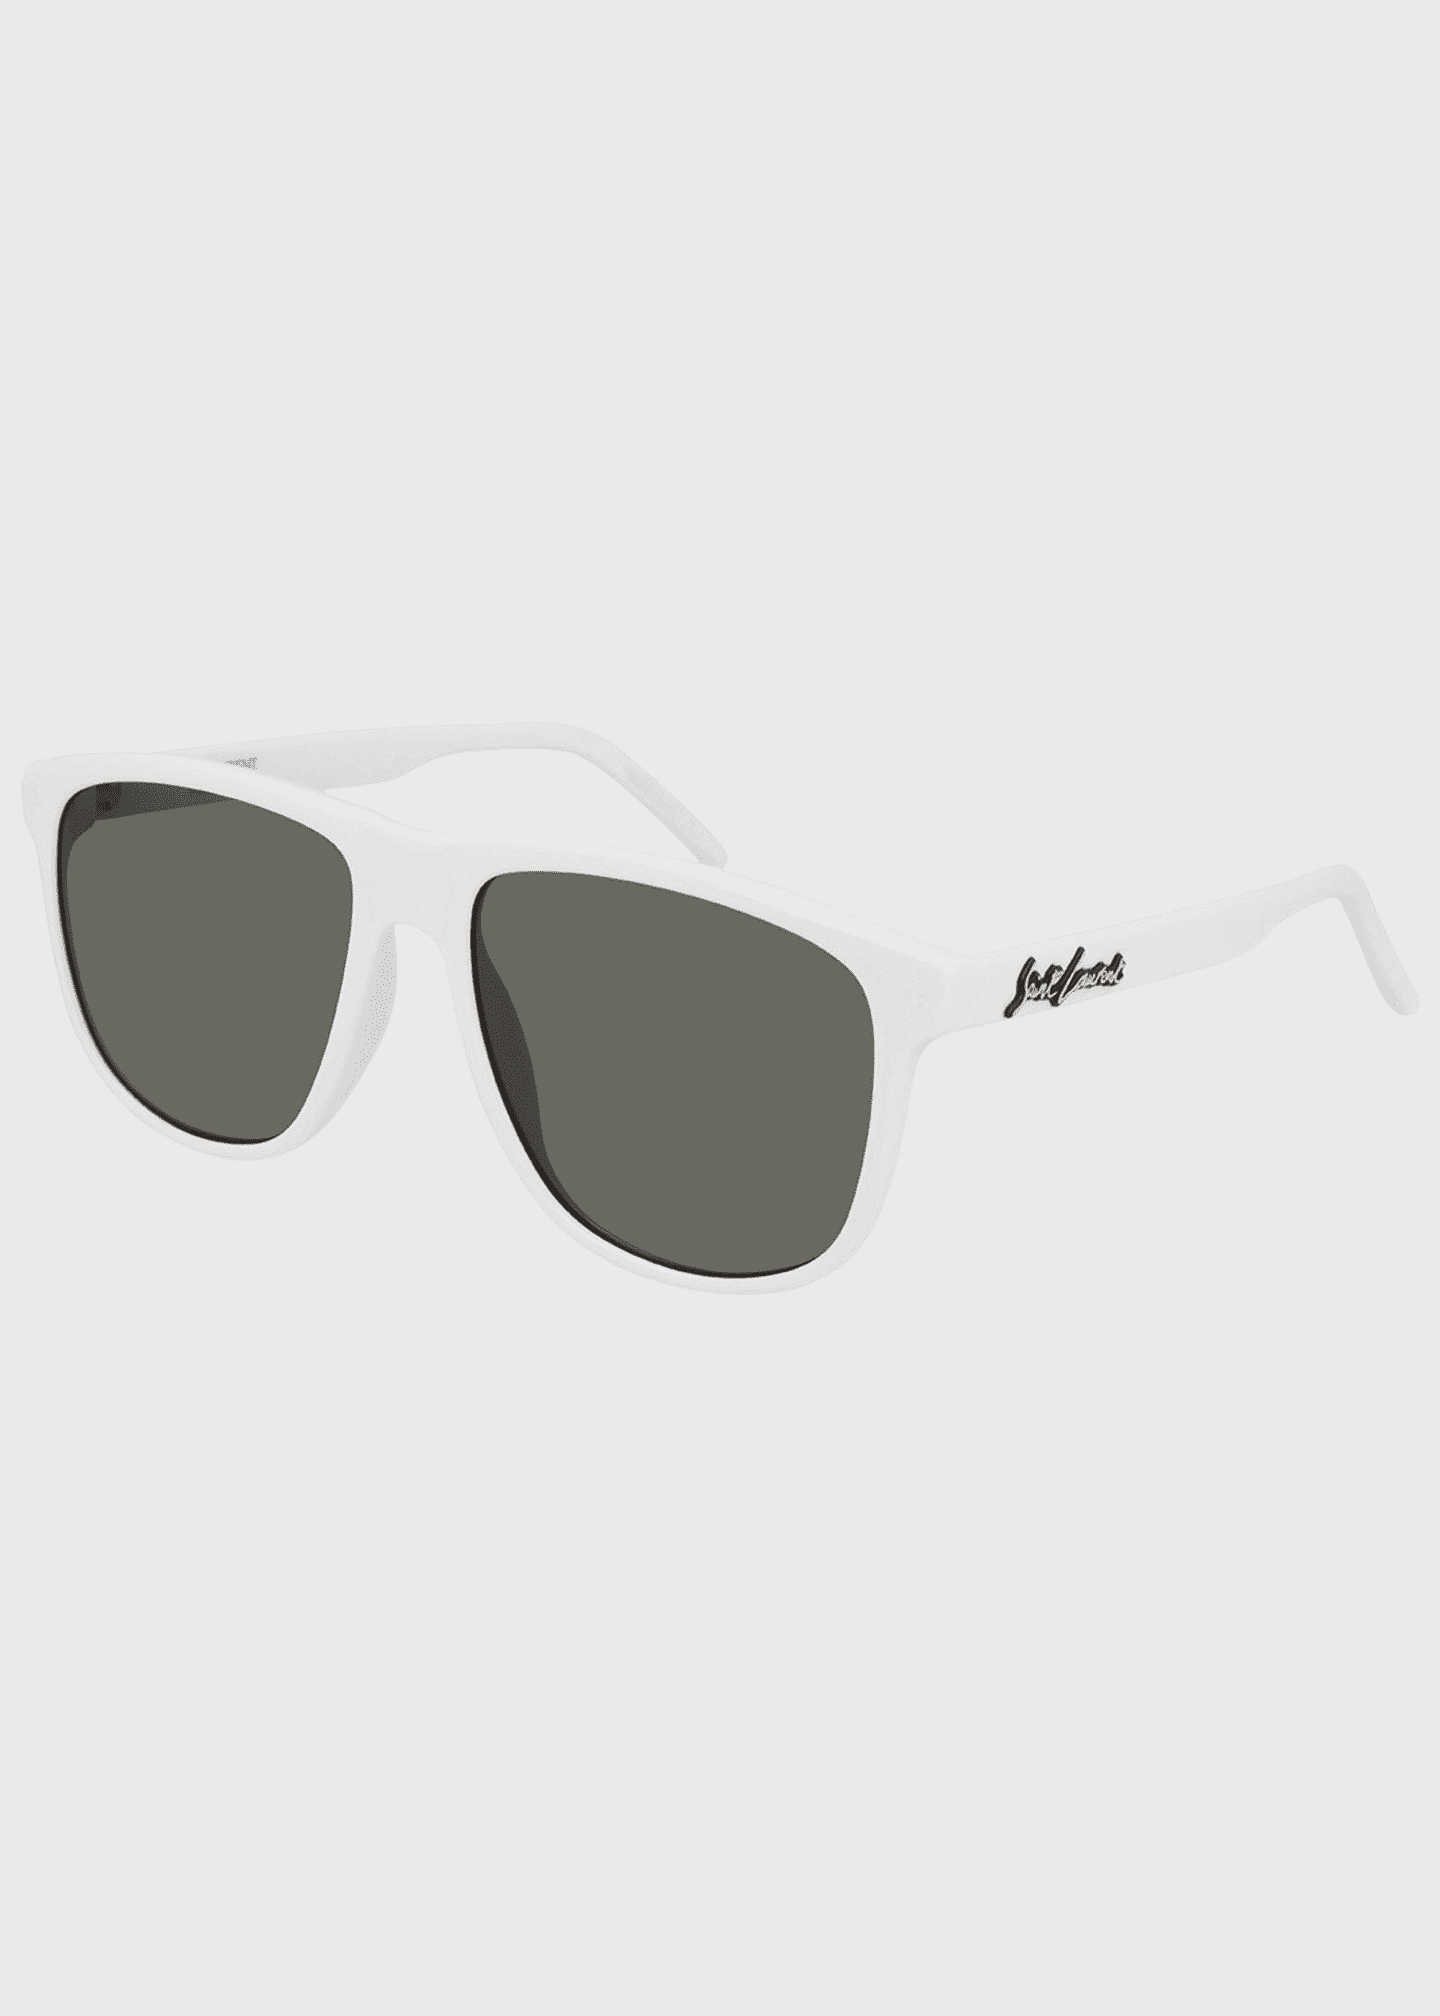 Image 1 of 1: Men's SL 334 Sunglasses